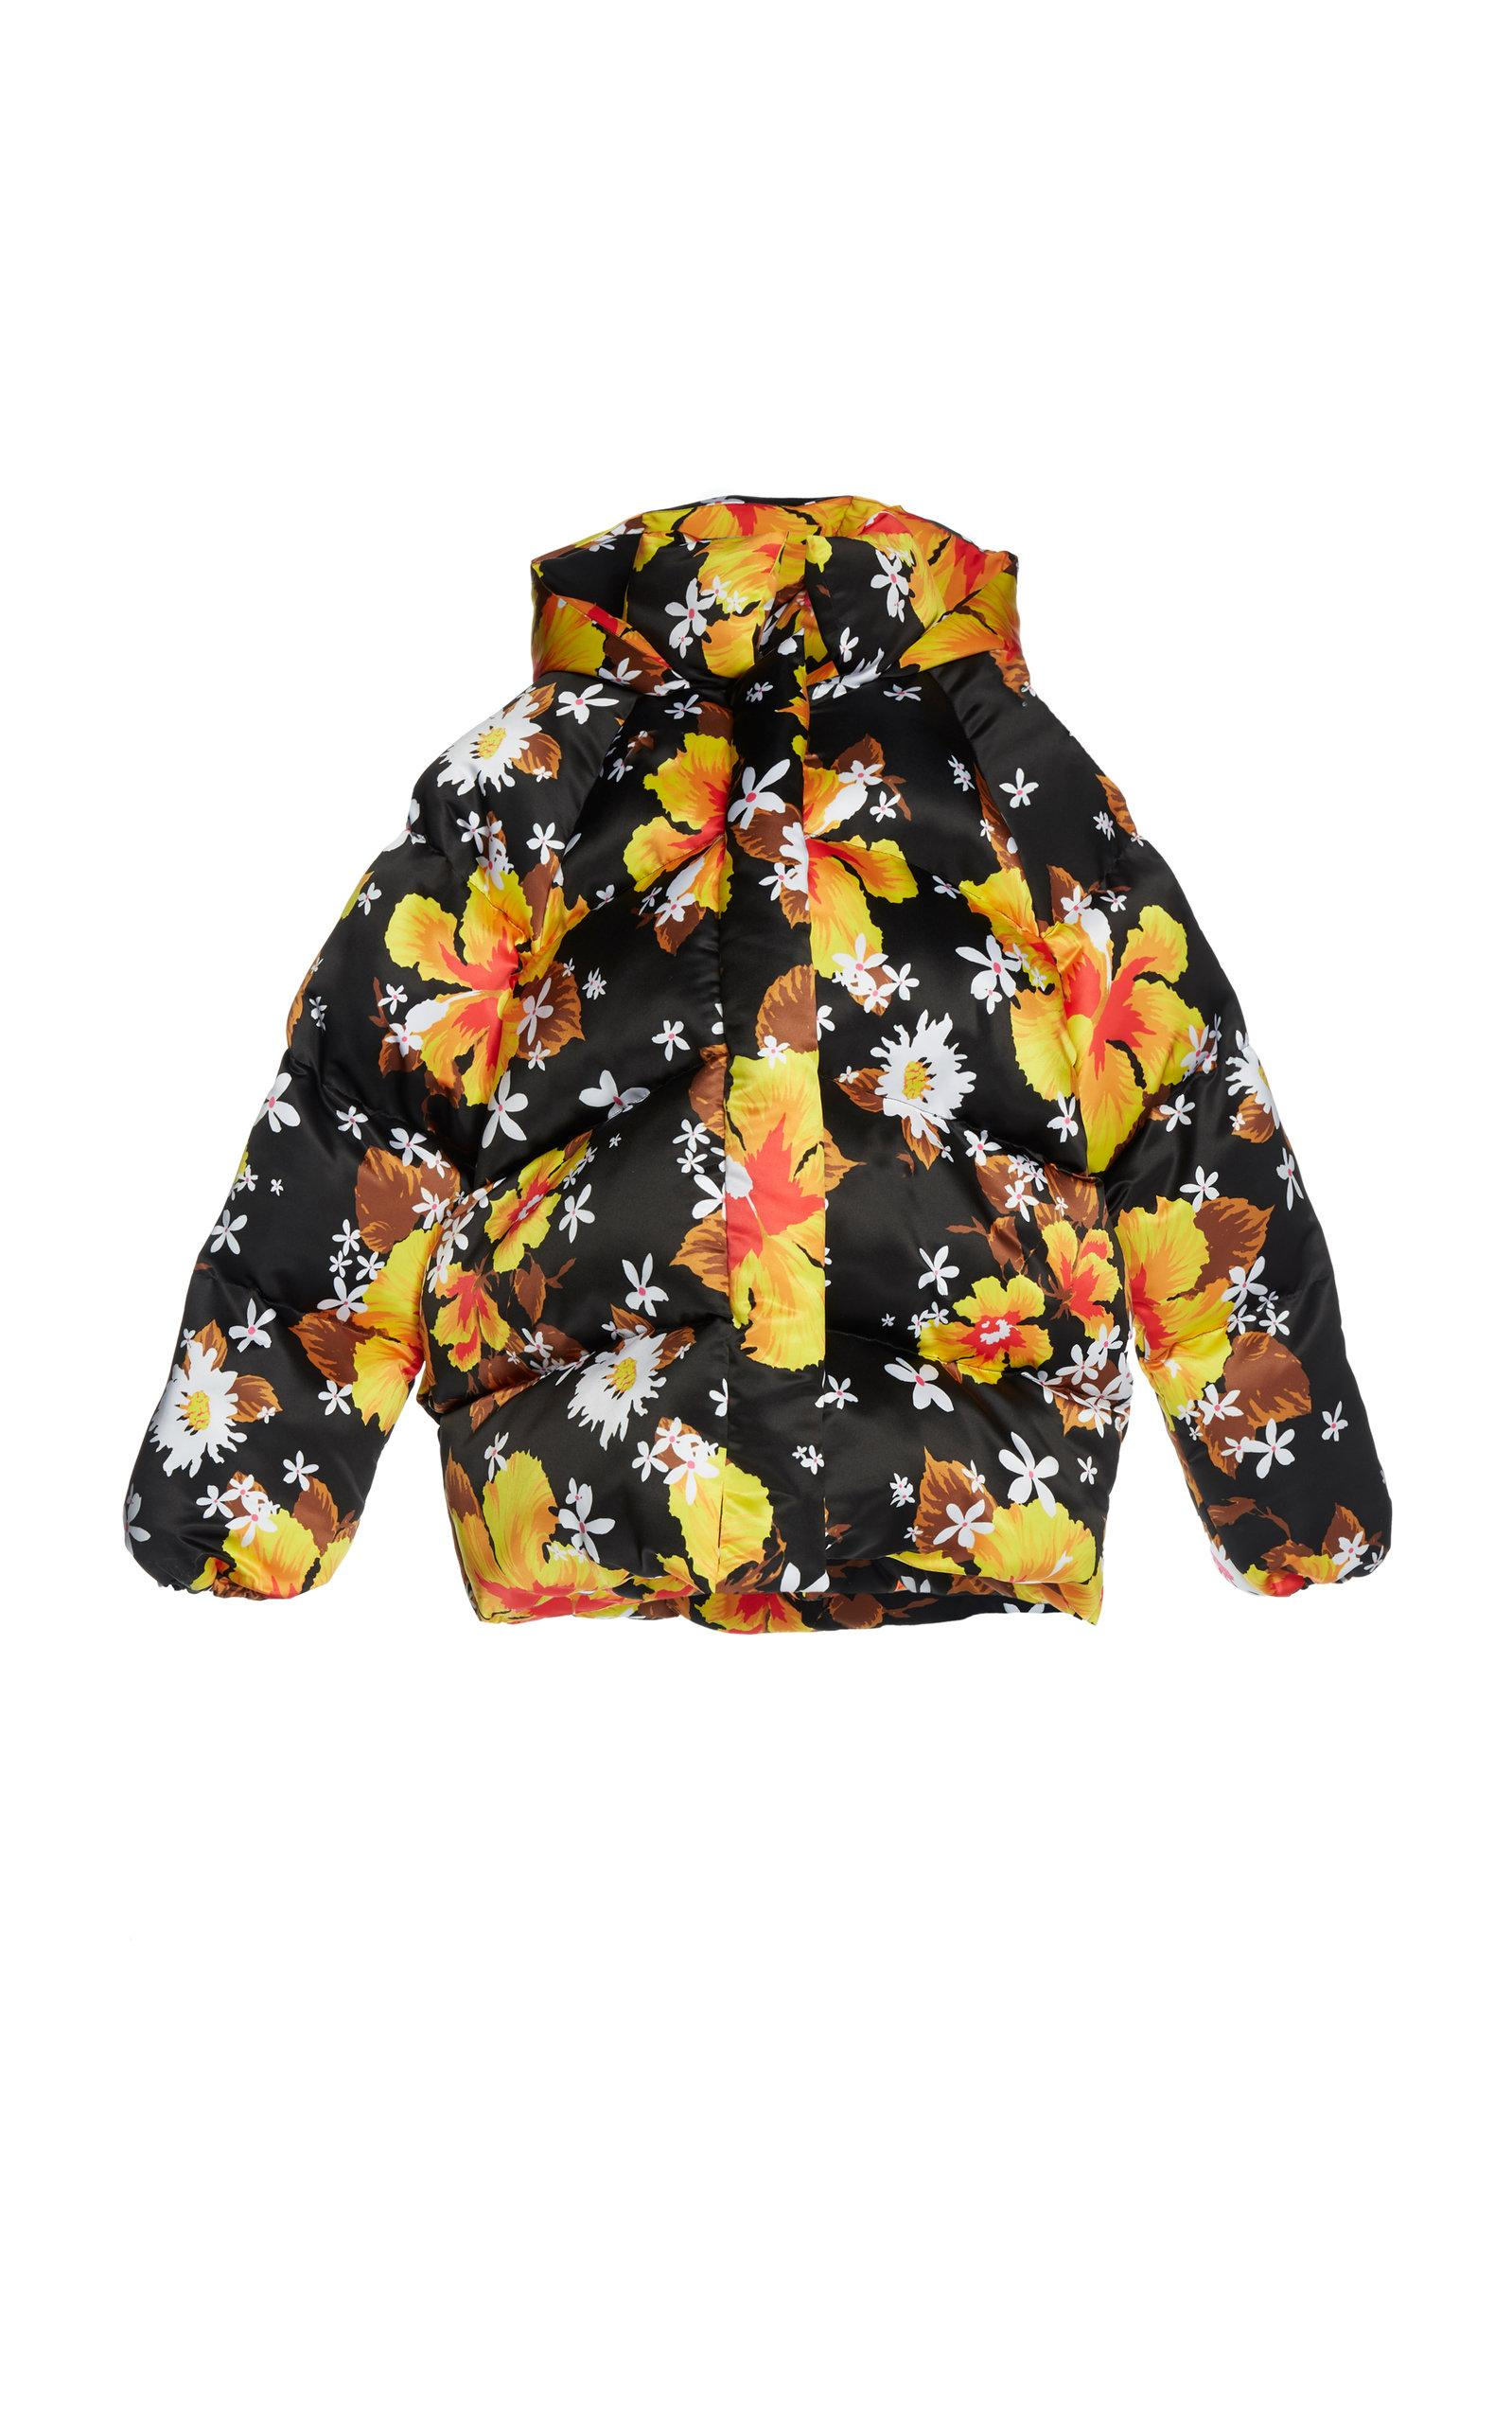 Richard Quinn Hawaii Puffer Coat In Floral